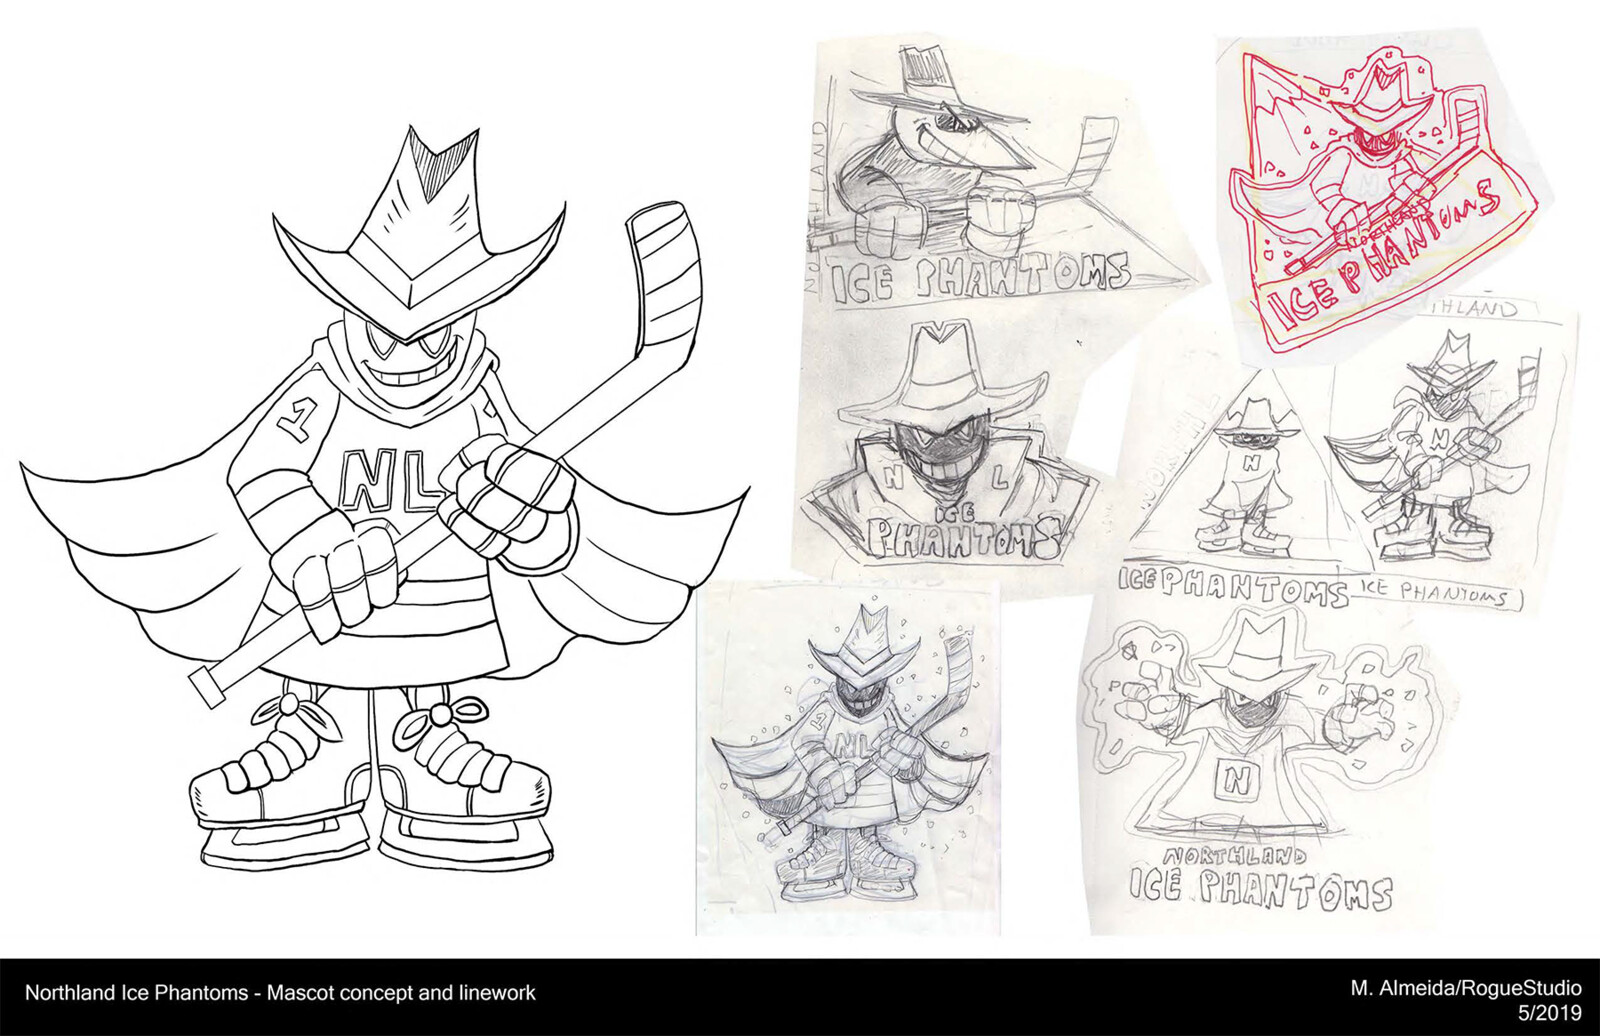 Mascot concept exploration and linework, traditional and Illustrator